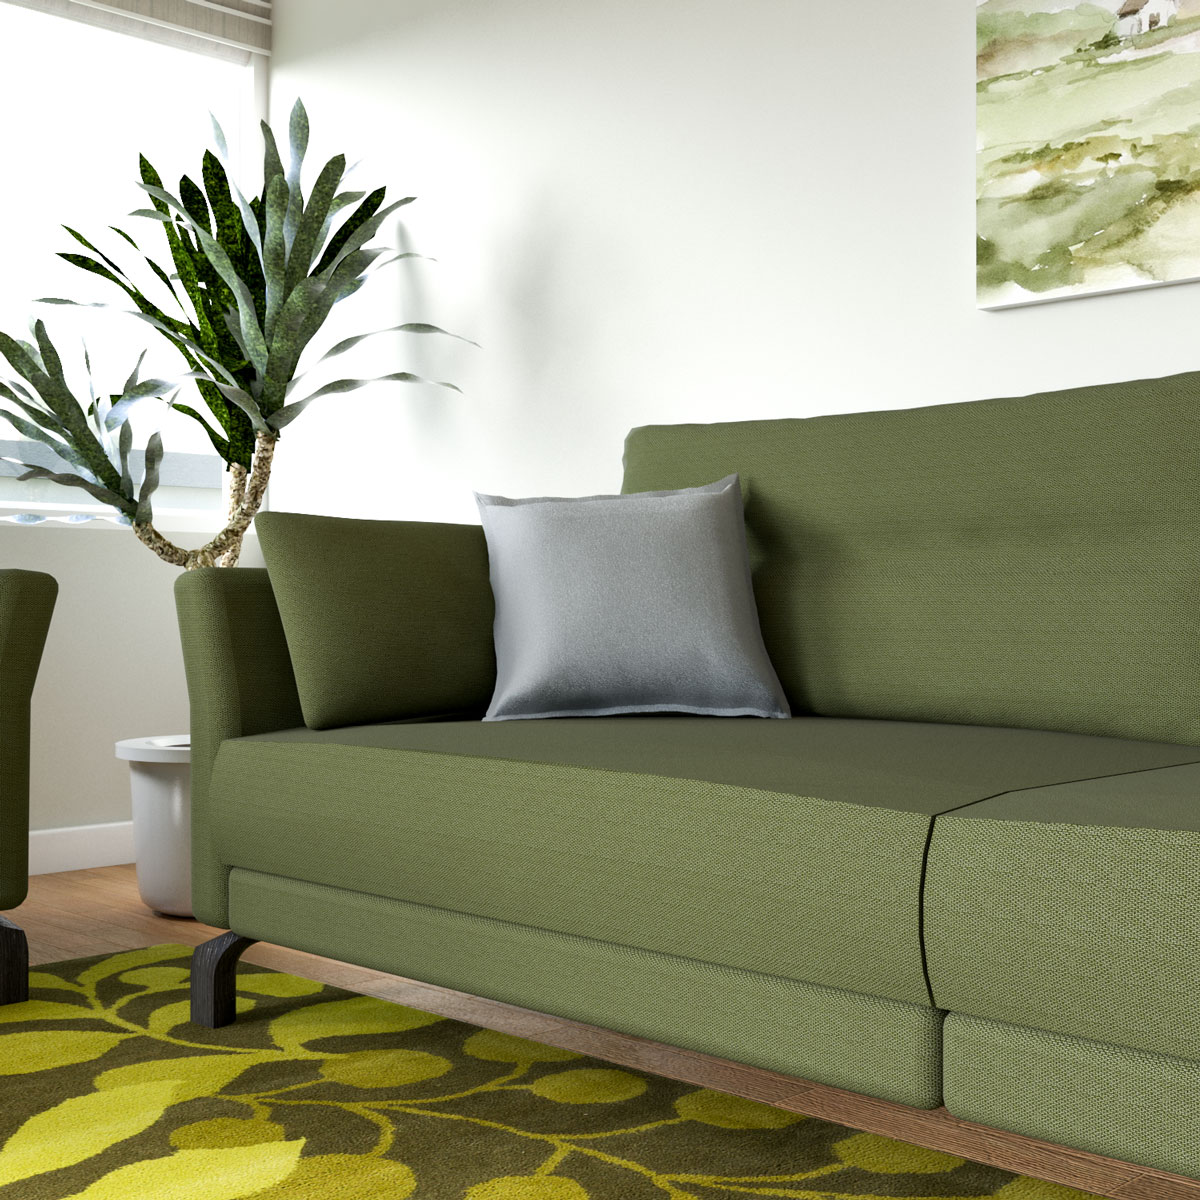 Luxury light gray throw pillow with olive green couch